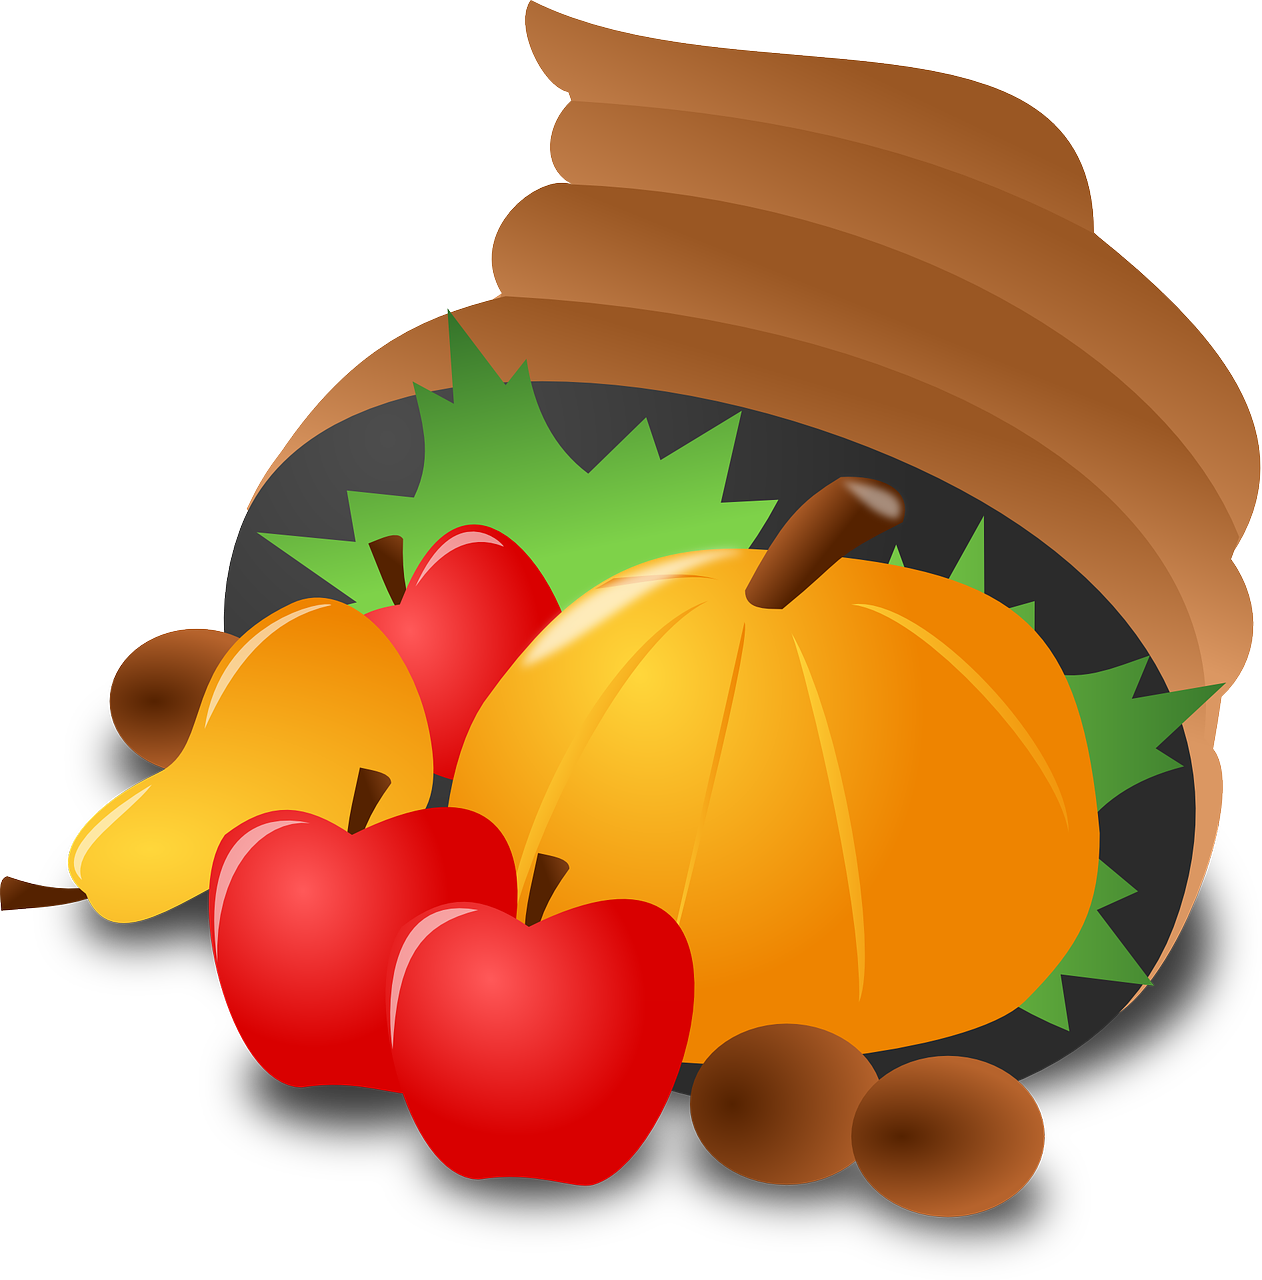 Free thanksgiving dinner clipart picture royalty free library Free Thanksgiving Pictures, Images and Wallpapers picture royalty free library